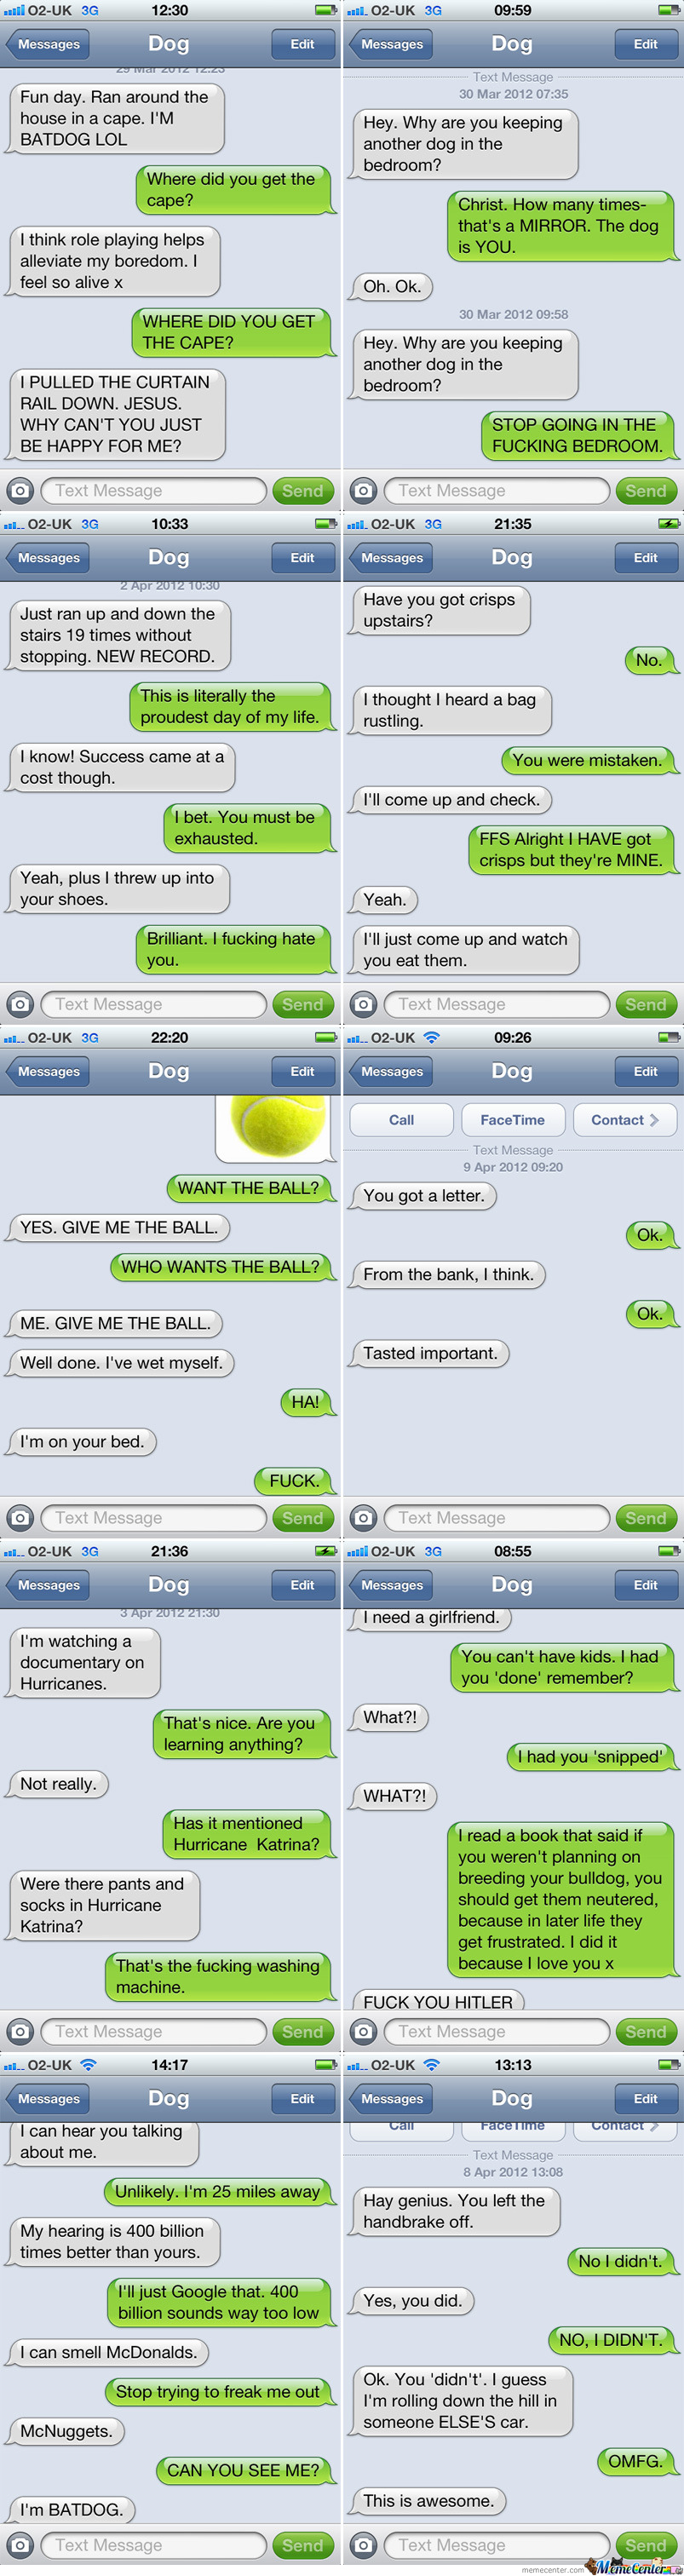 Just My Dog Texting Me.